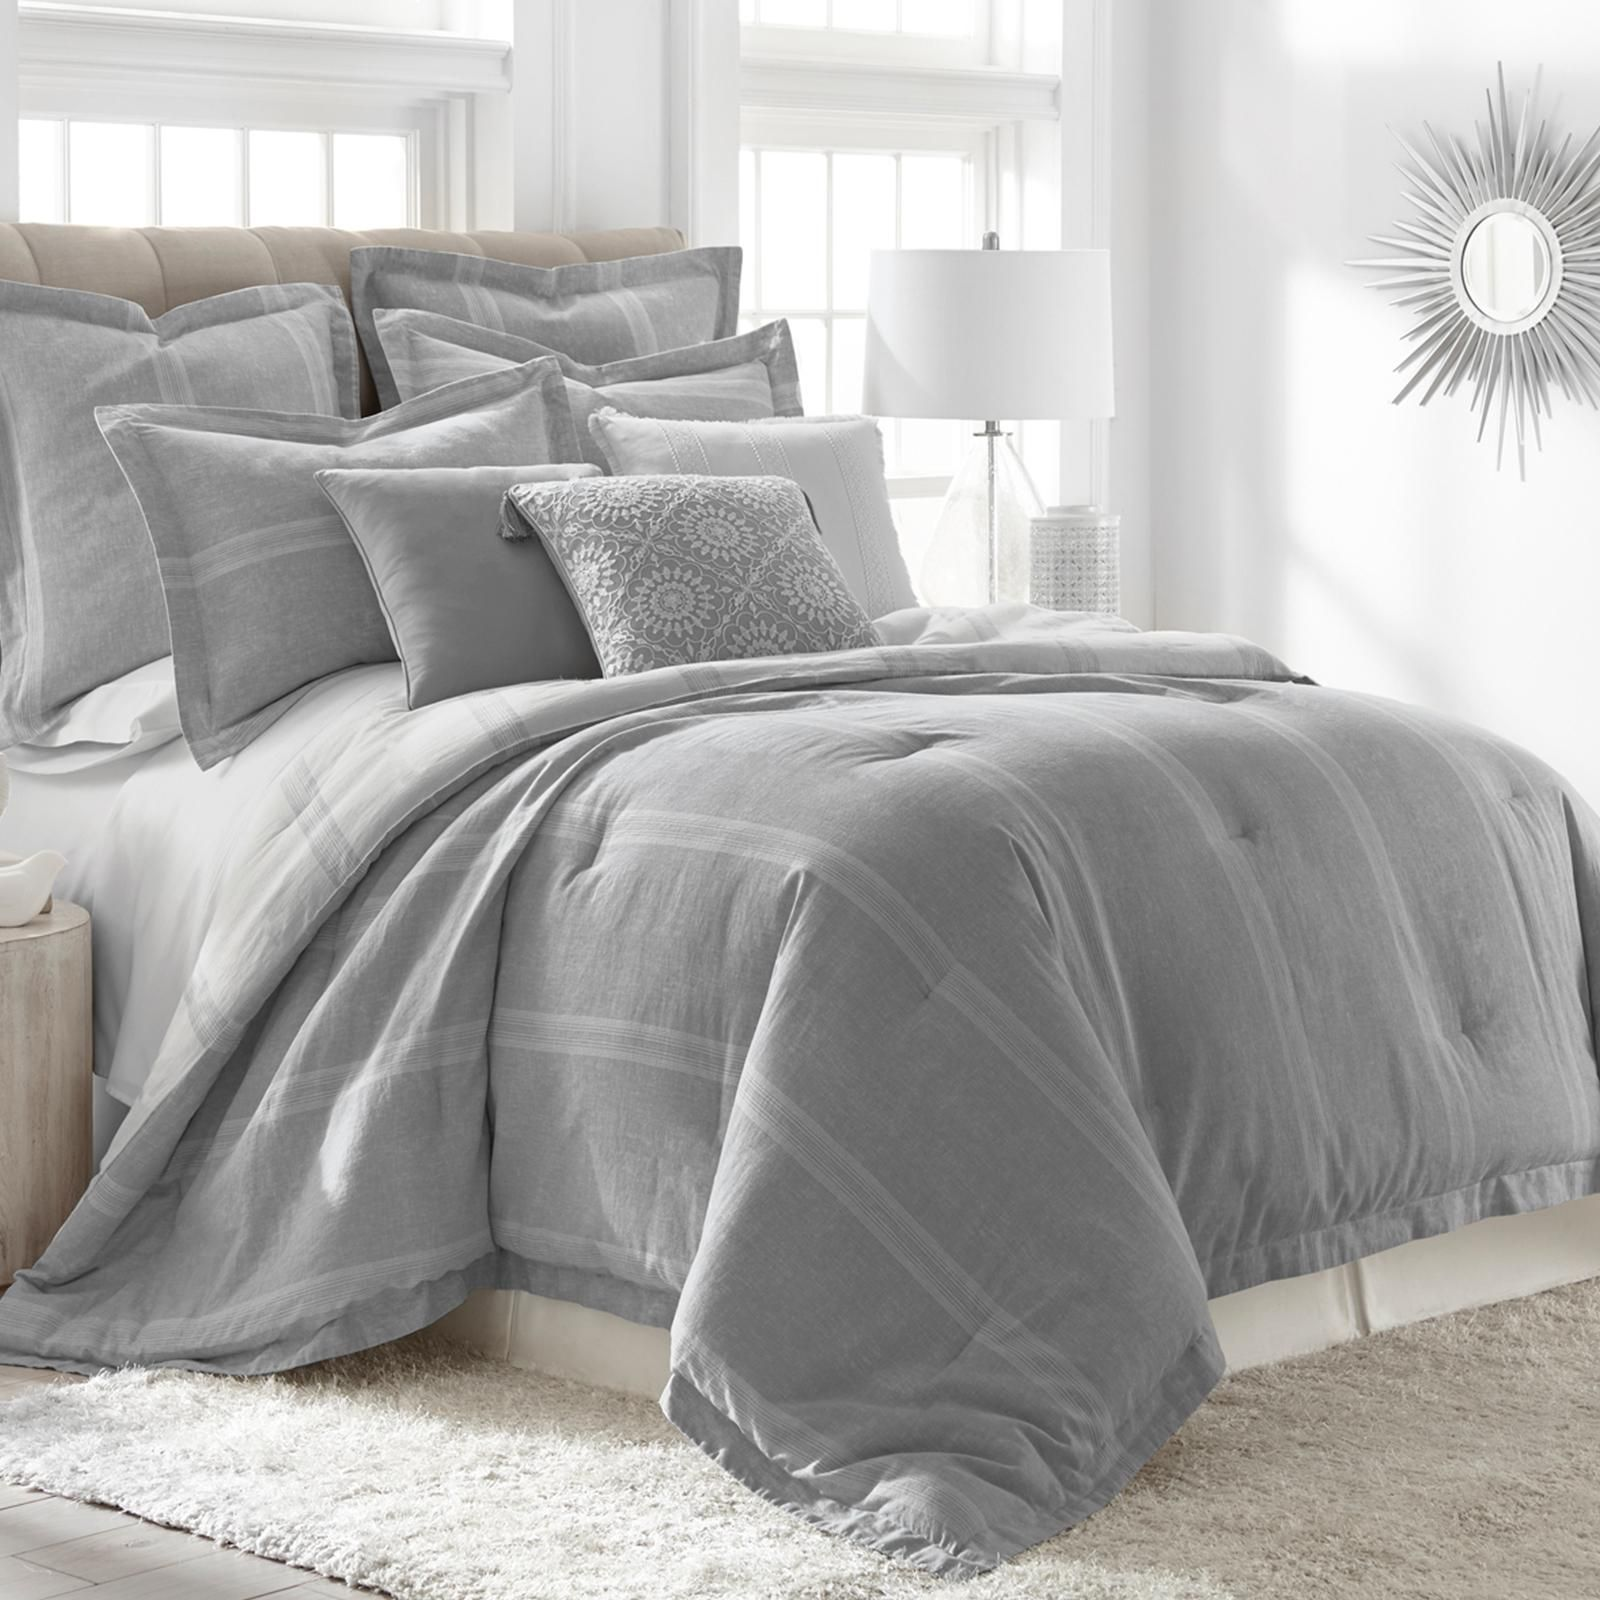 Give your bedroom a fresh look with the Levtex Home Linen